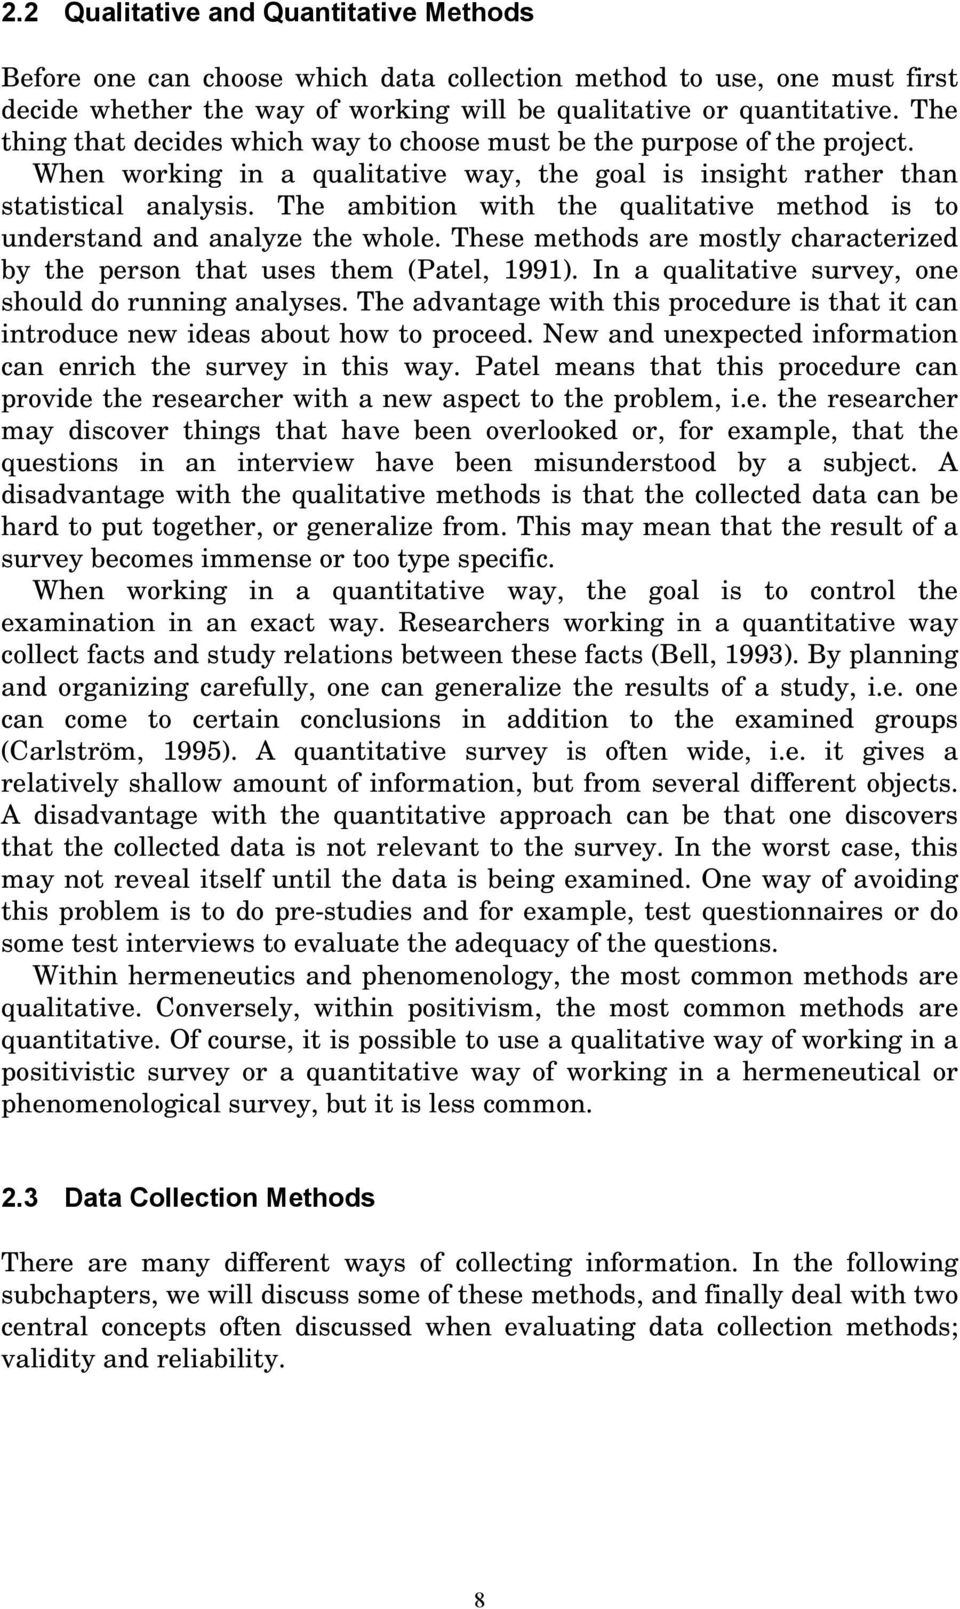 The ambition with the qualitative method is to understand and analyze the whole. These methods are mostly characterized by the person that uses them (Patel, 1991).